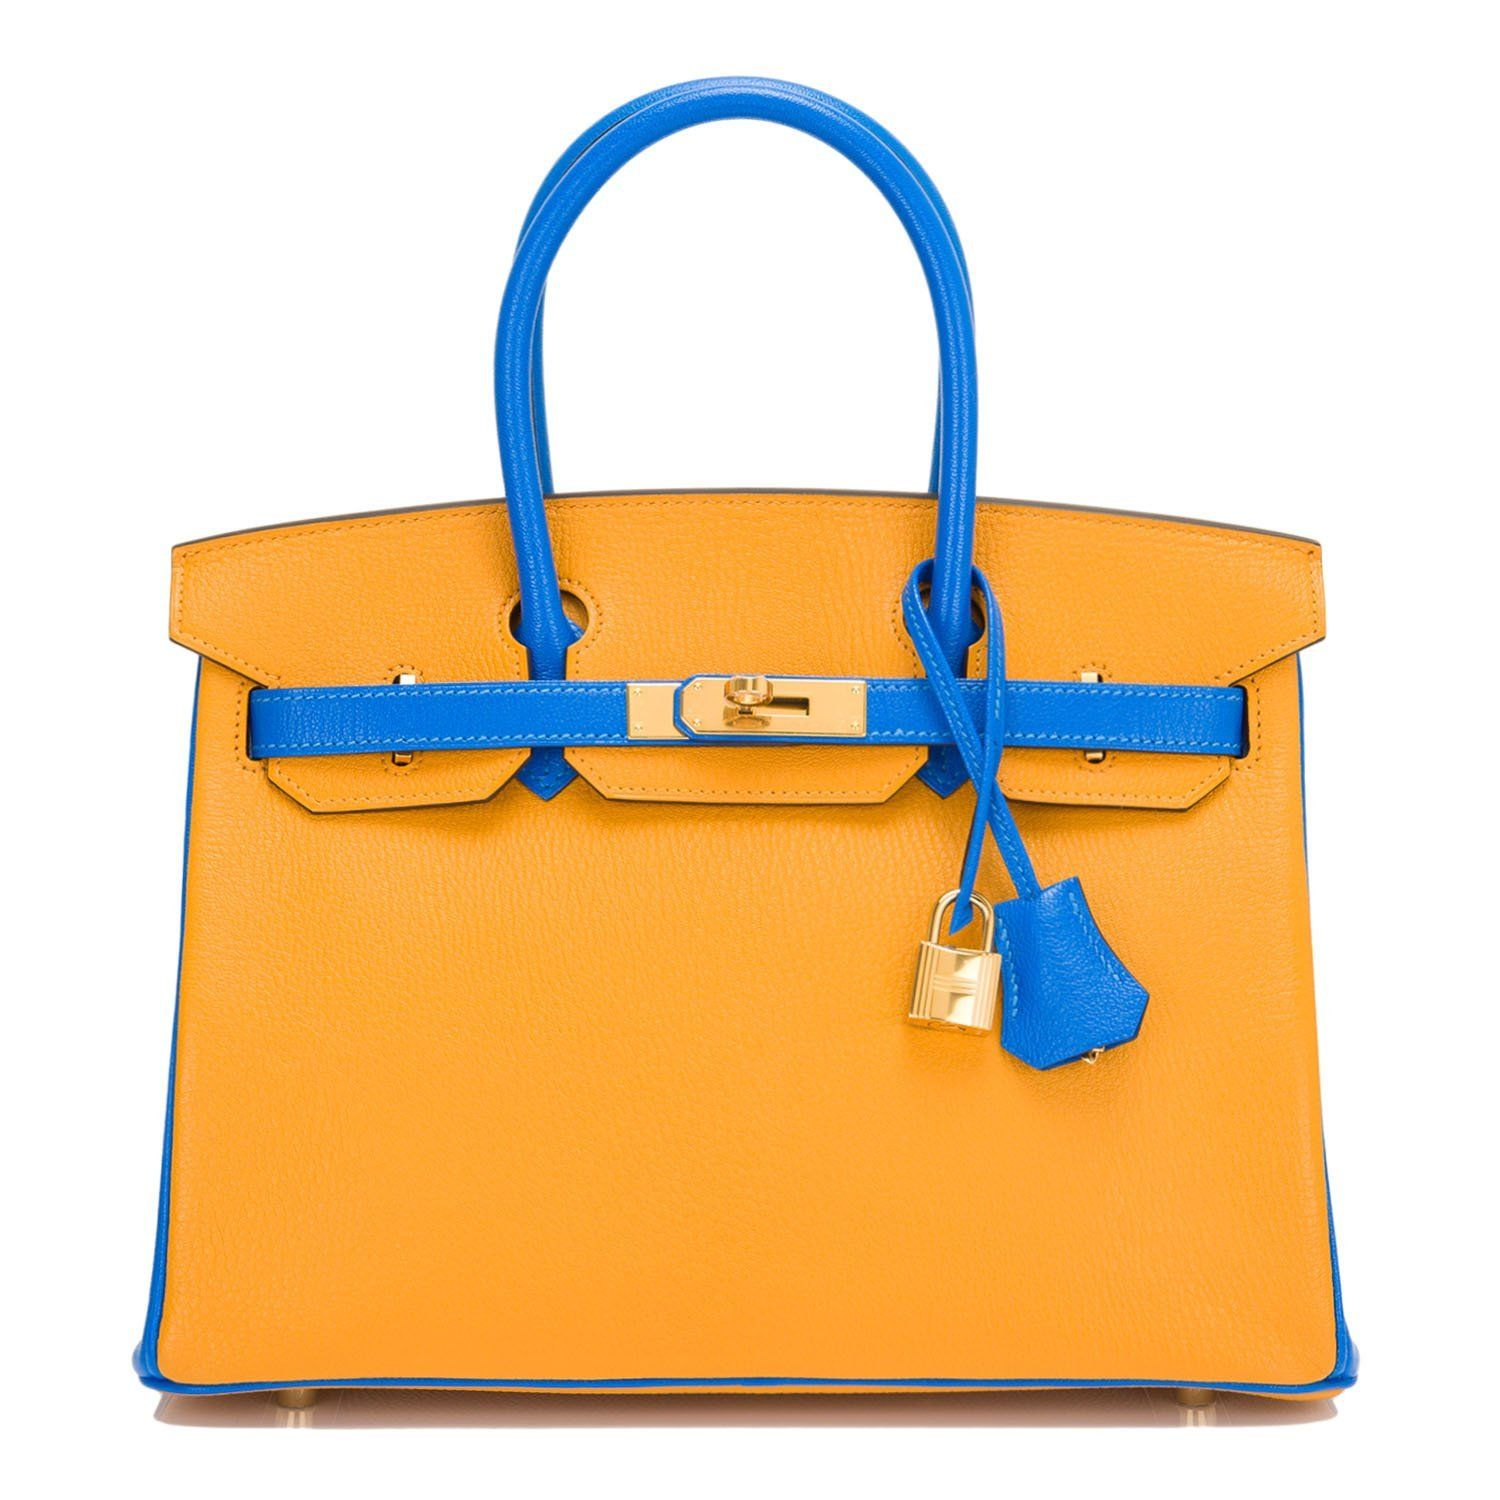 0d856bb781 Hermes HSS Jaune D Or and Blue Hydra chevre mysore Birkin 30cm with gold  hardware